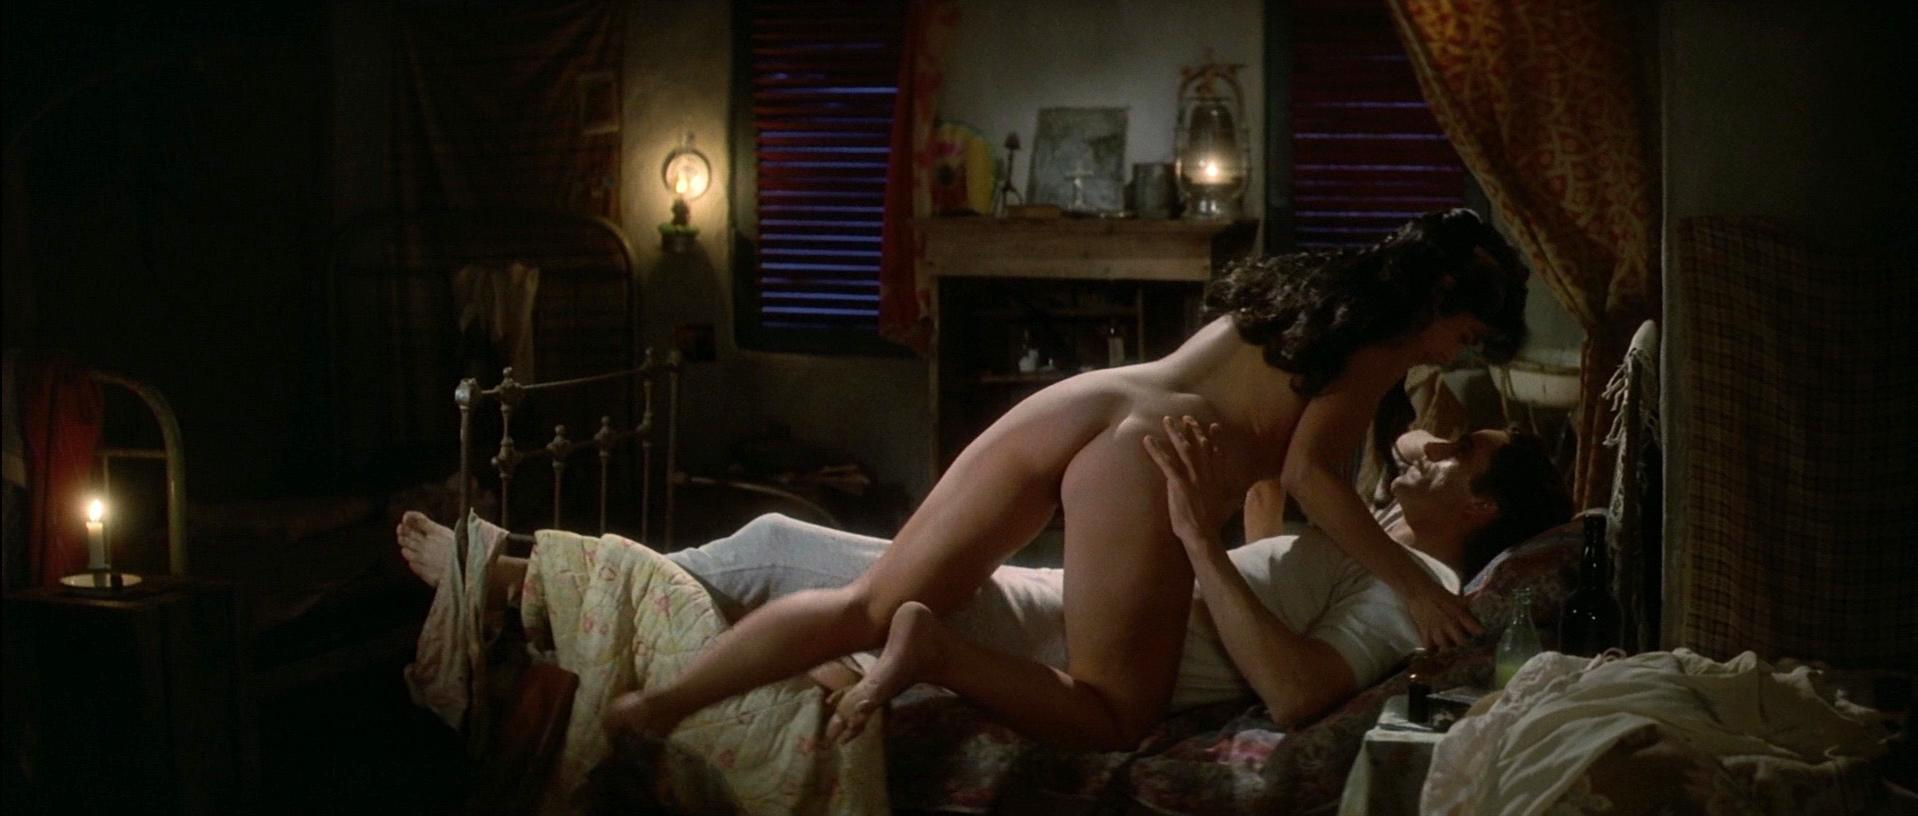 Maria Conchita Alonso nude, Sarita Choudhury nude - The House of the Spirits (1993)